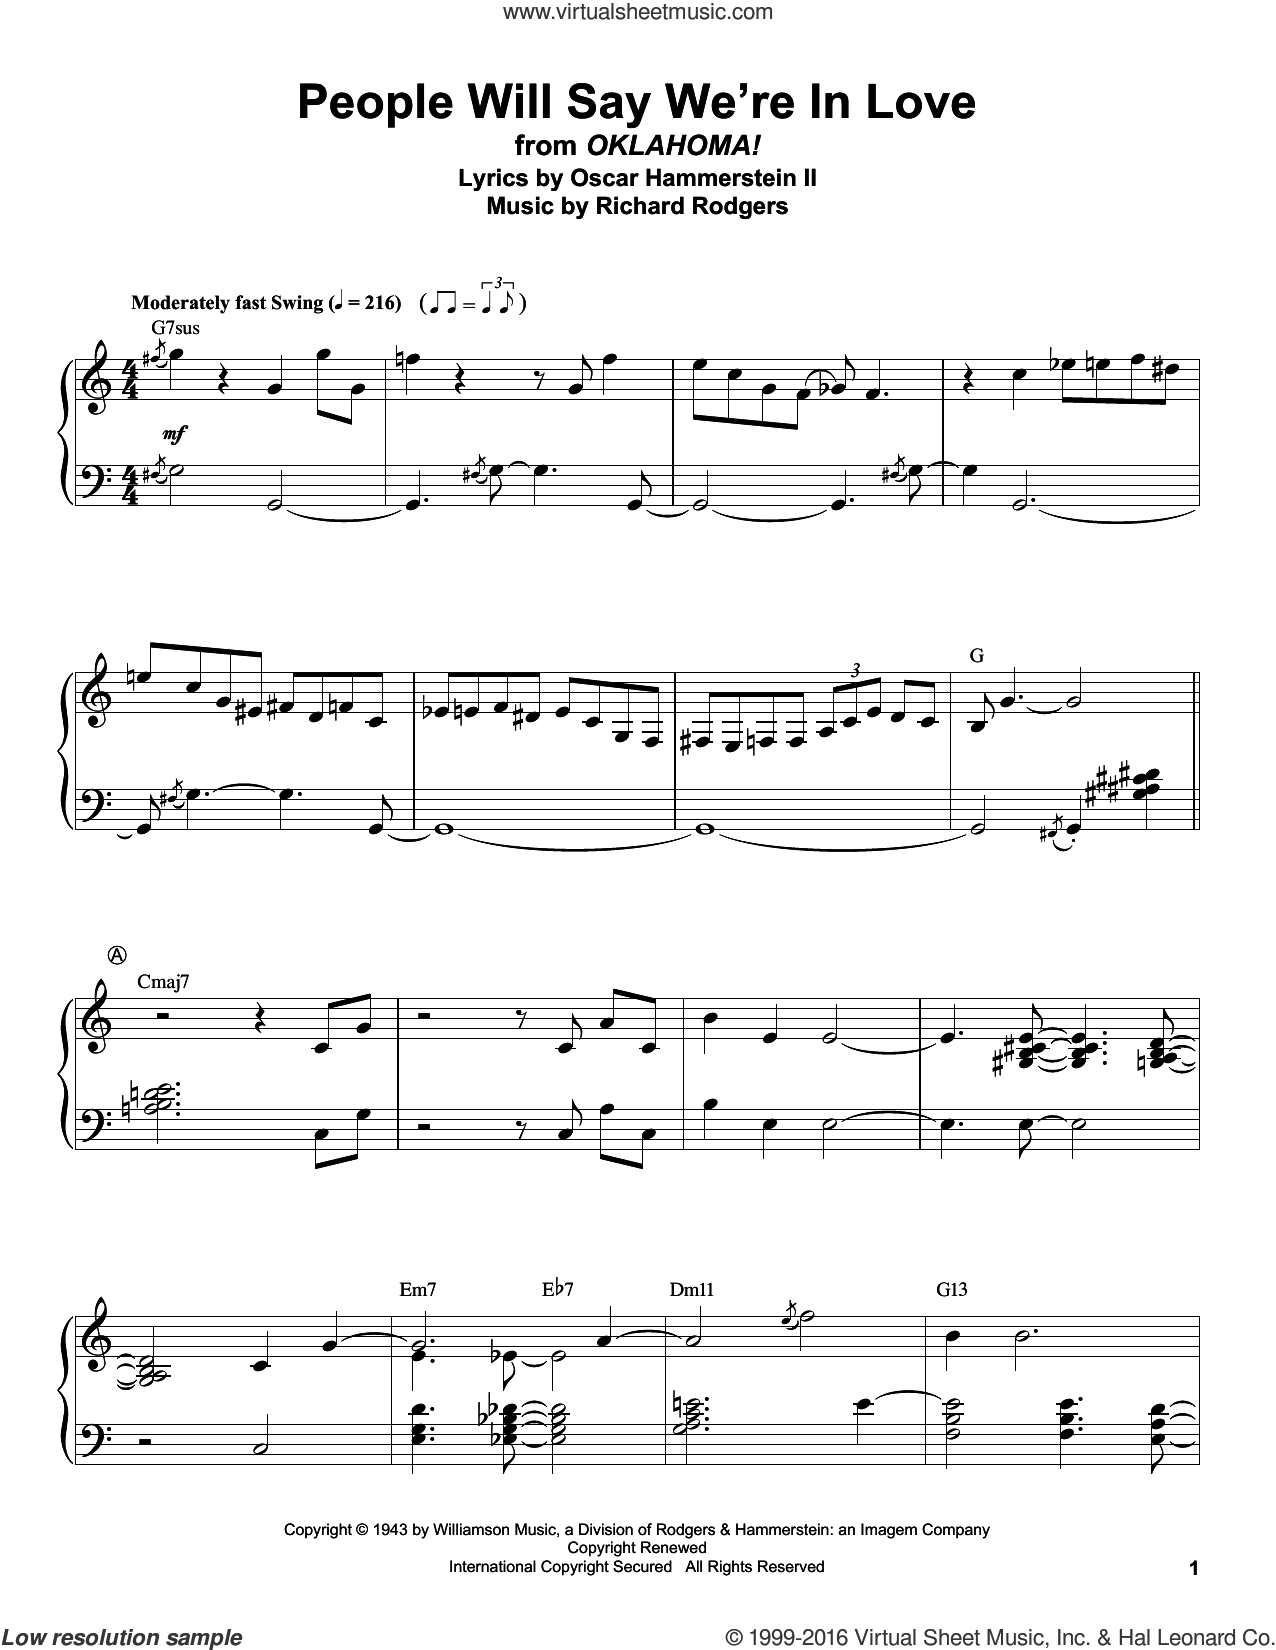 People Will Say We're In Love sheet music for piano solo (transcription) by Rodgers & Hammerstein, Oscar II Hammerstein and Richard Rodgers. Score Image Preview.